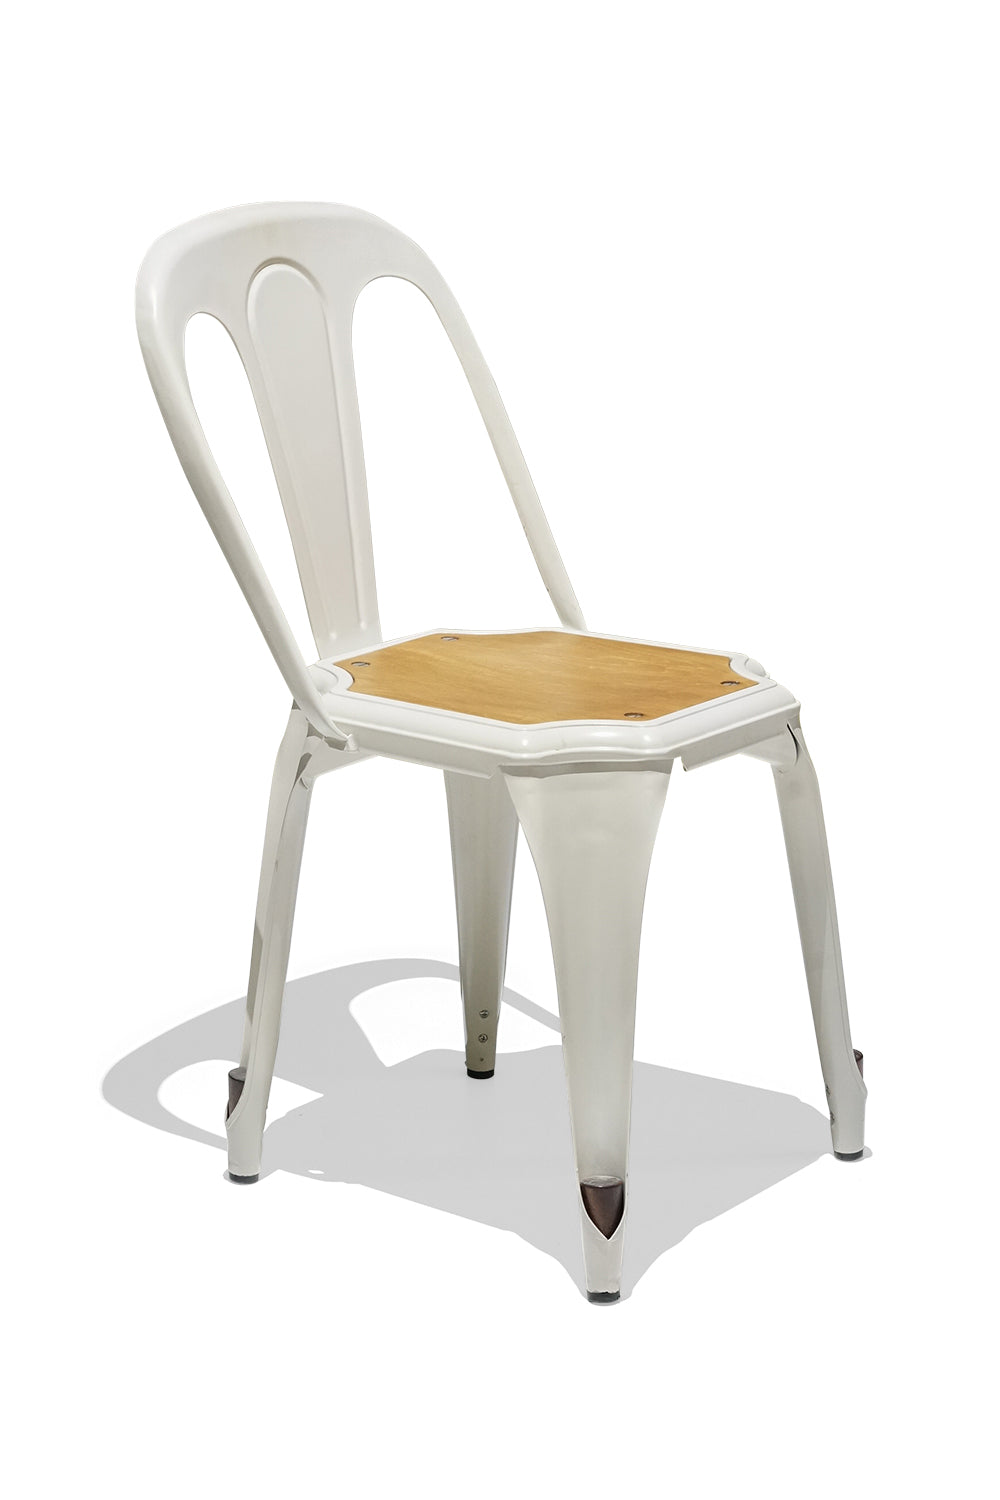 MILTON TIMBER chair